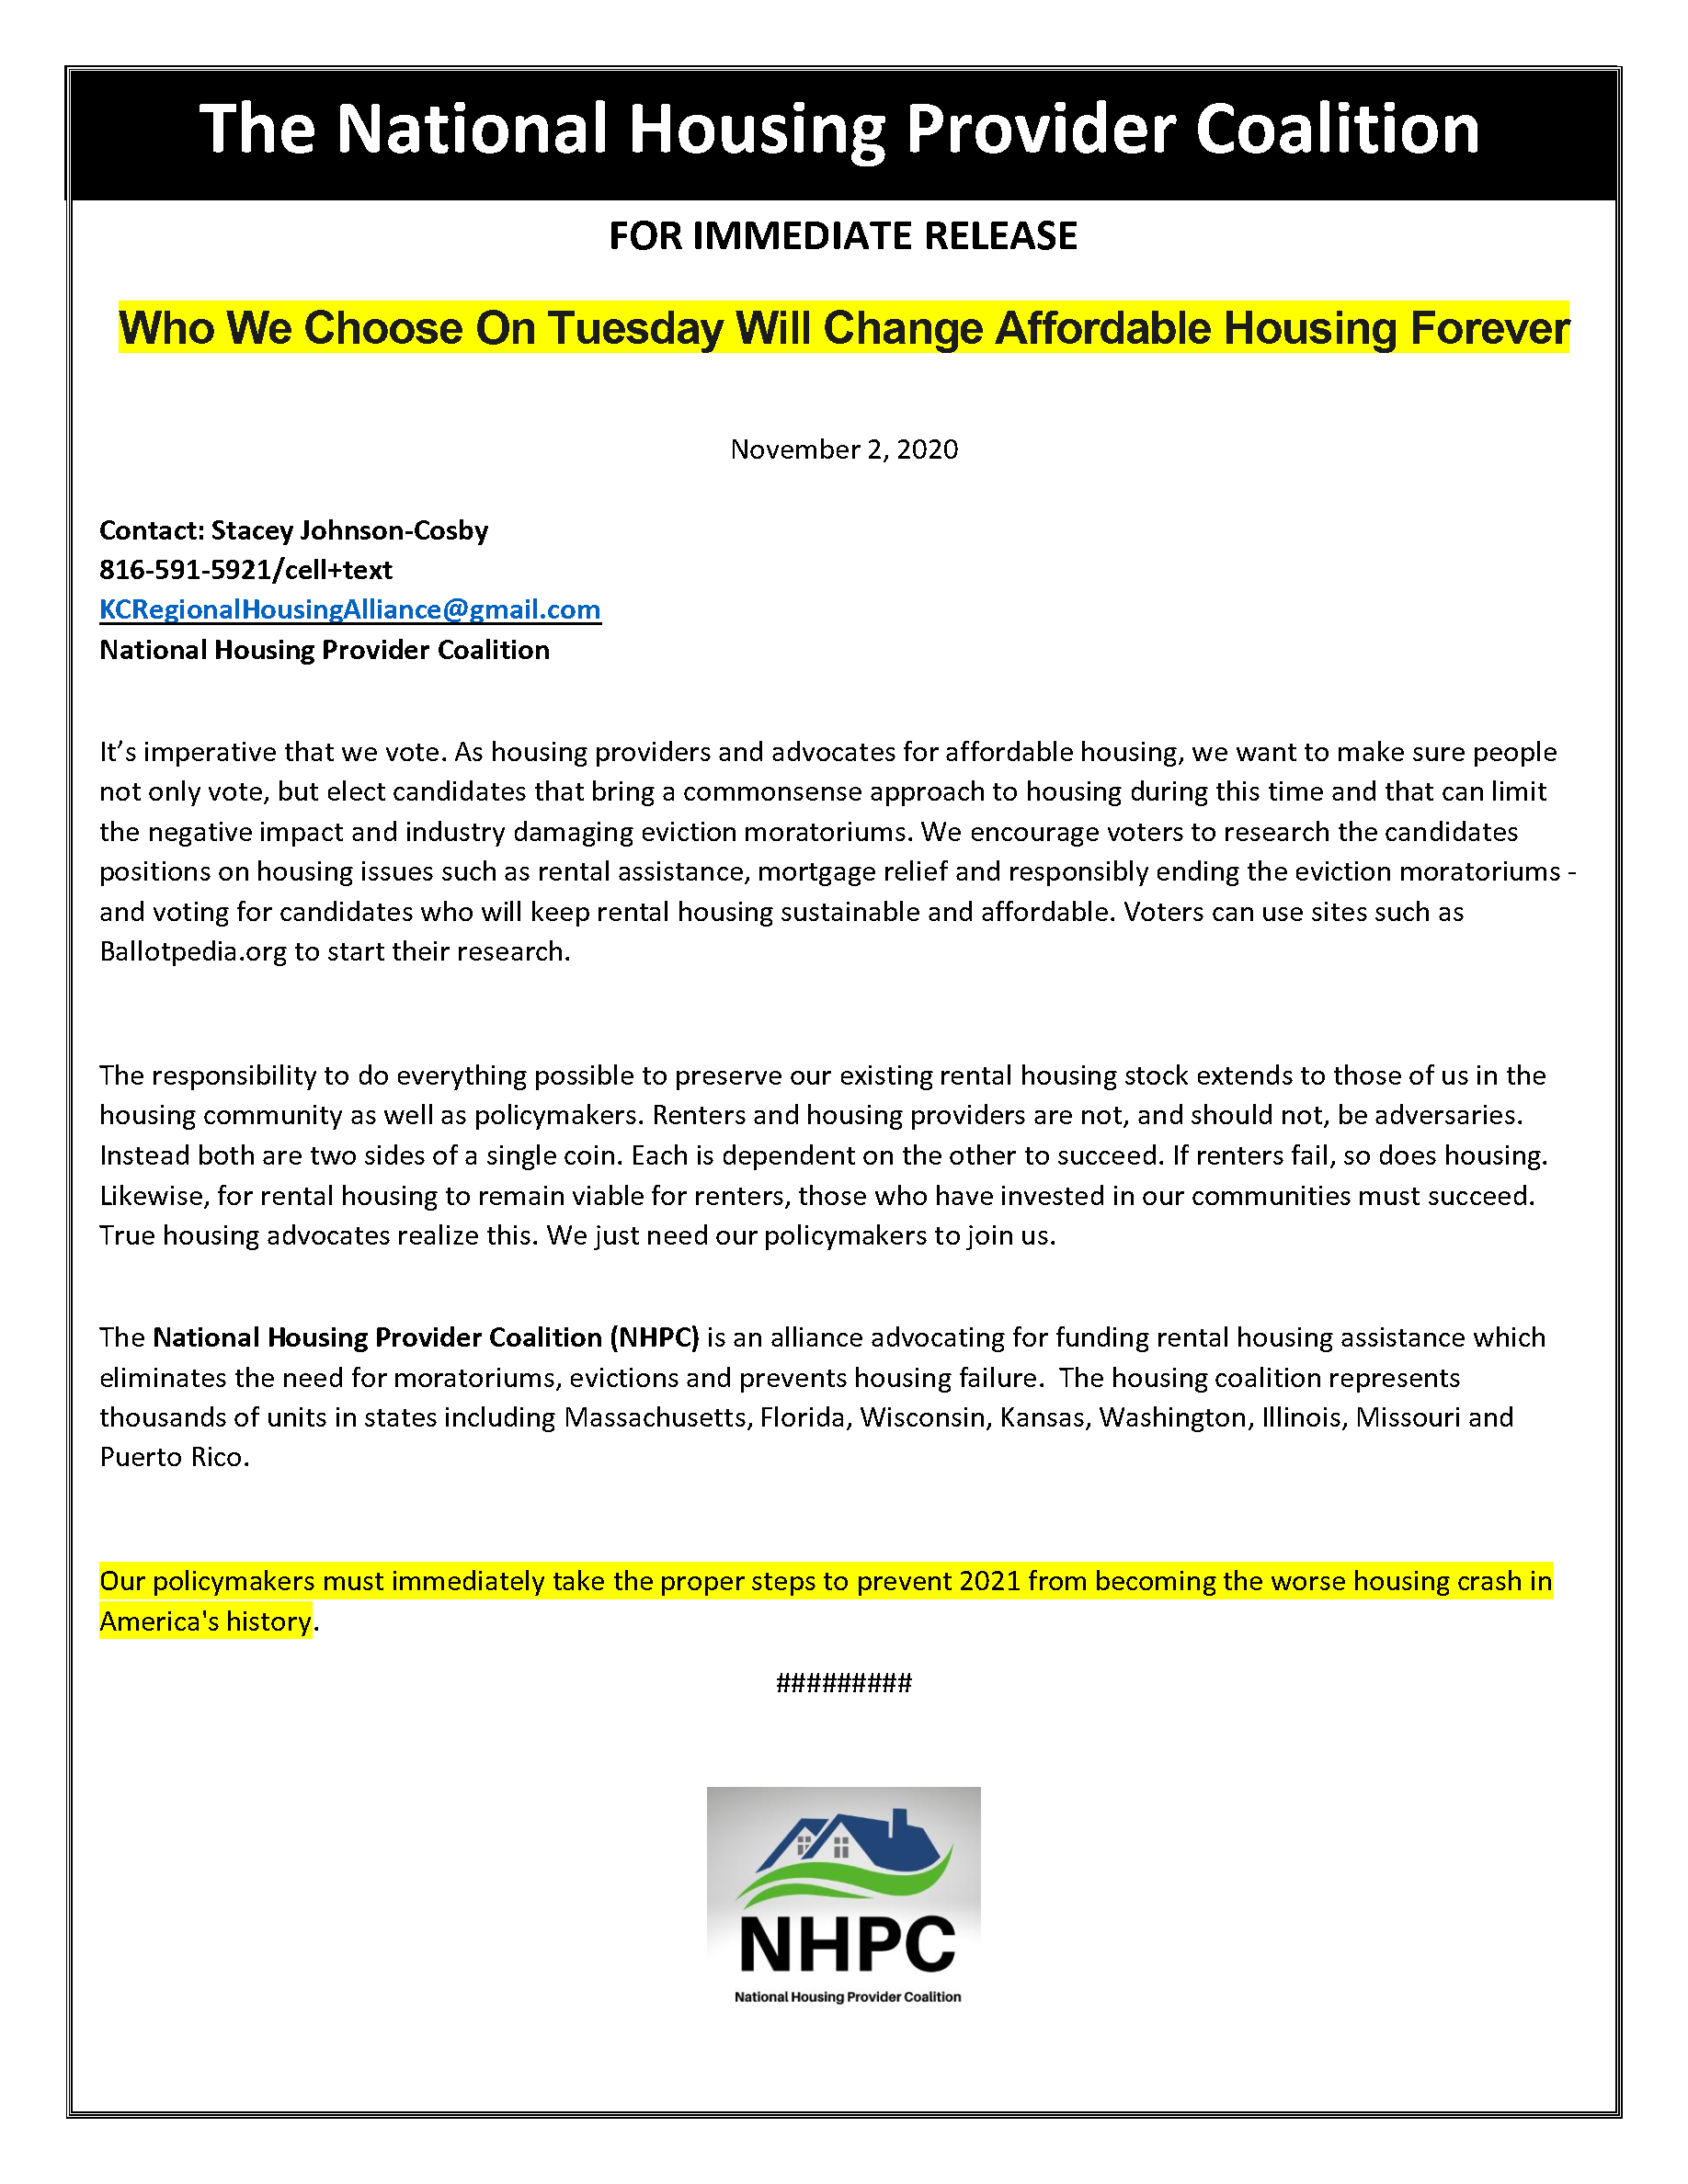 Who We Choose On Tuesday Will Change Affordable Housing Forever